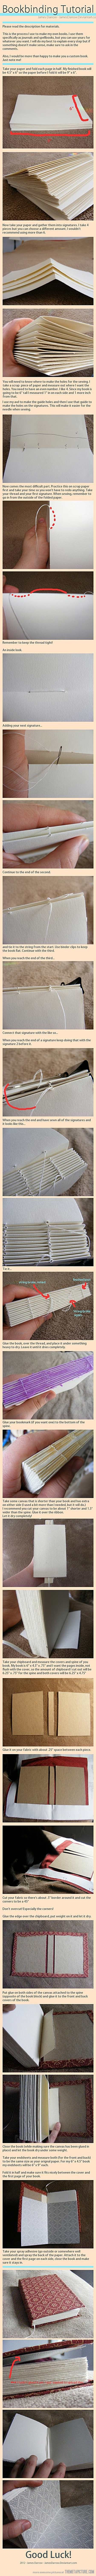 How to make your own book…Im going to try this!!